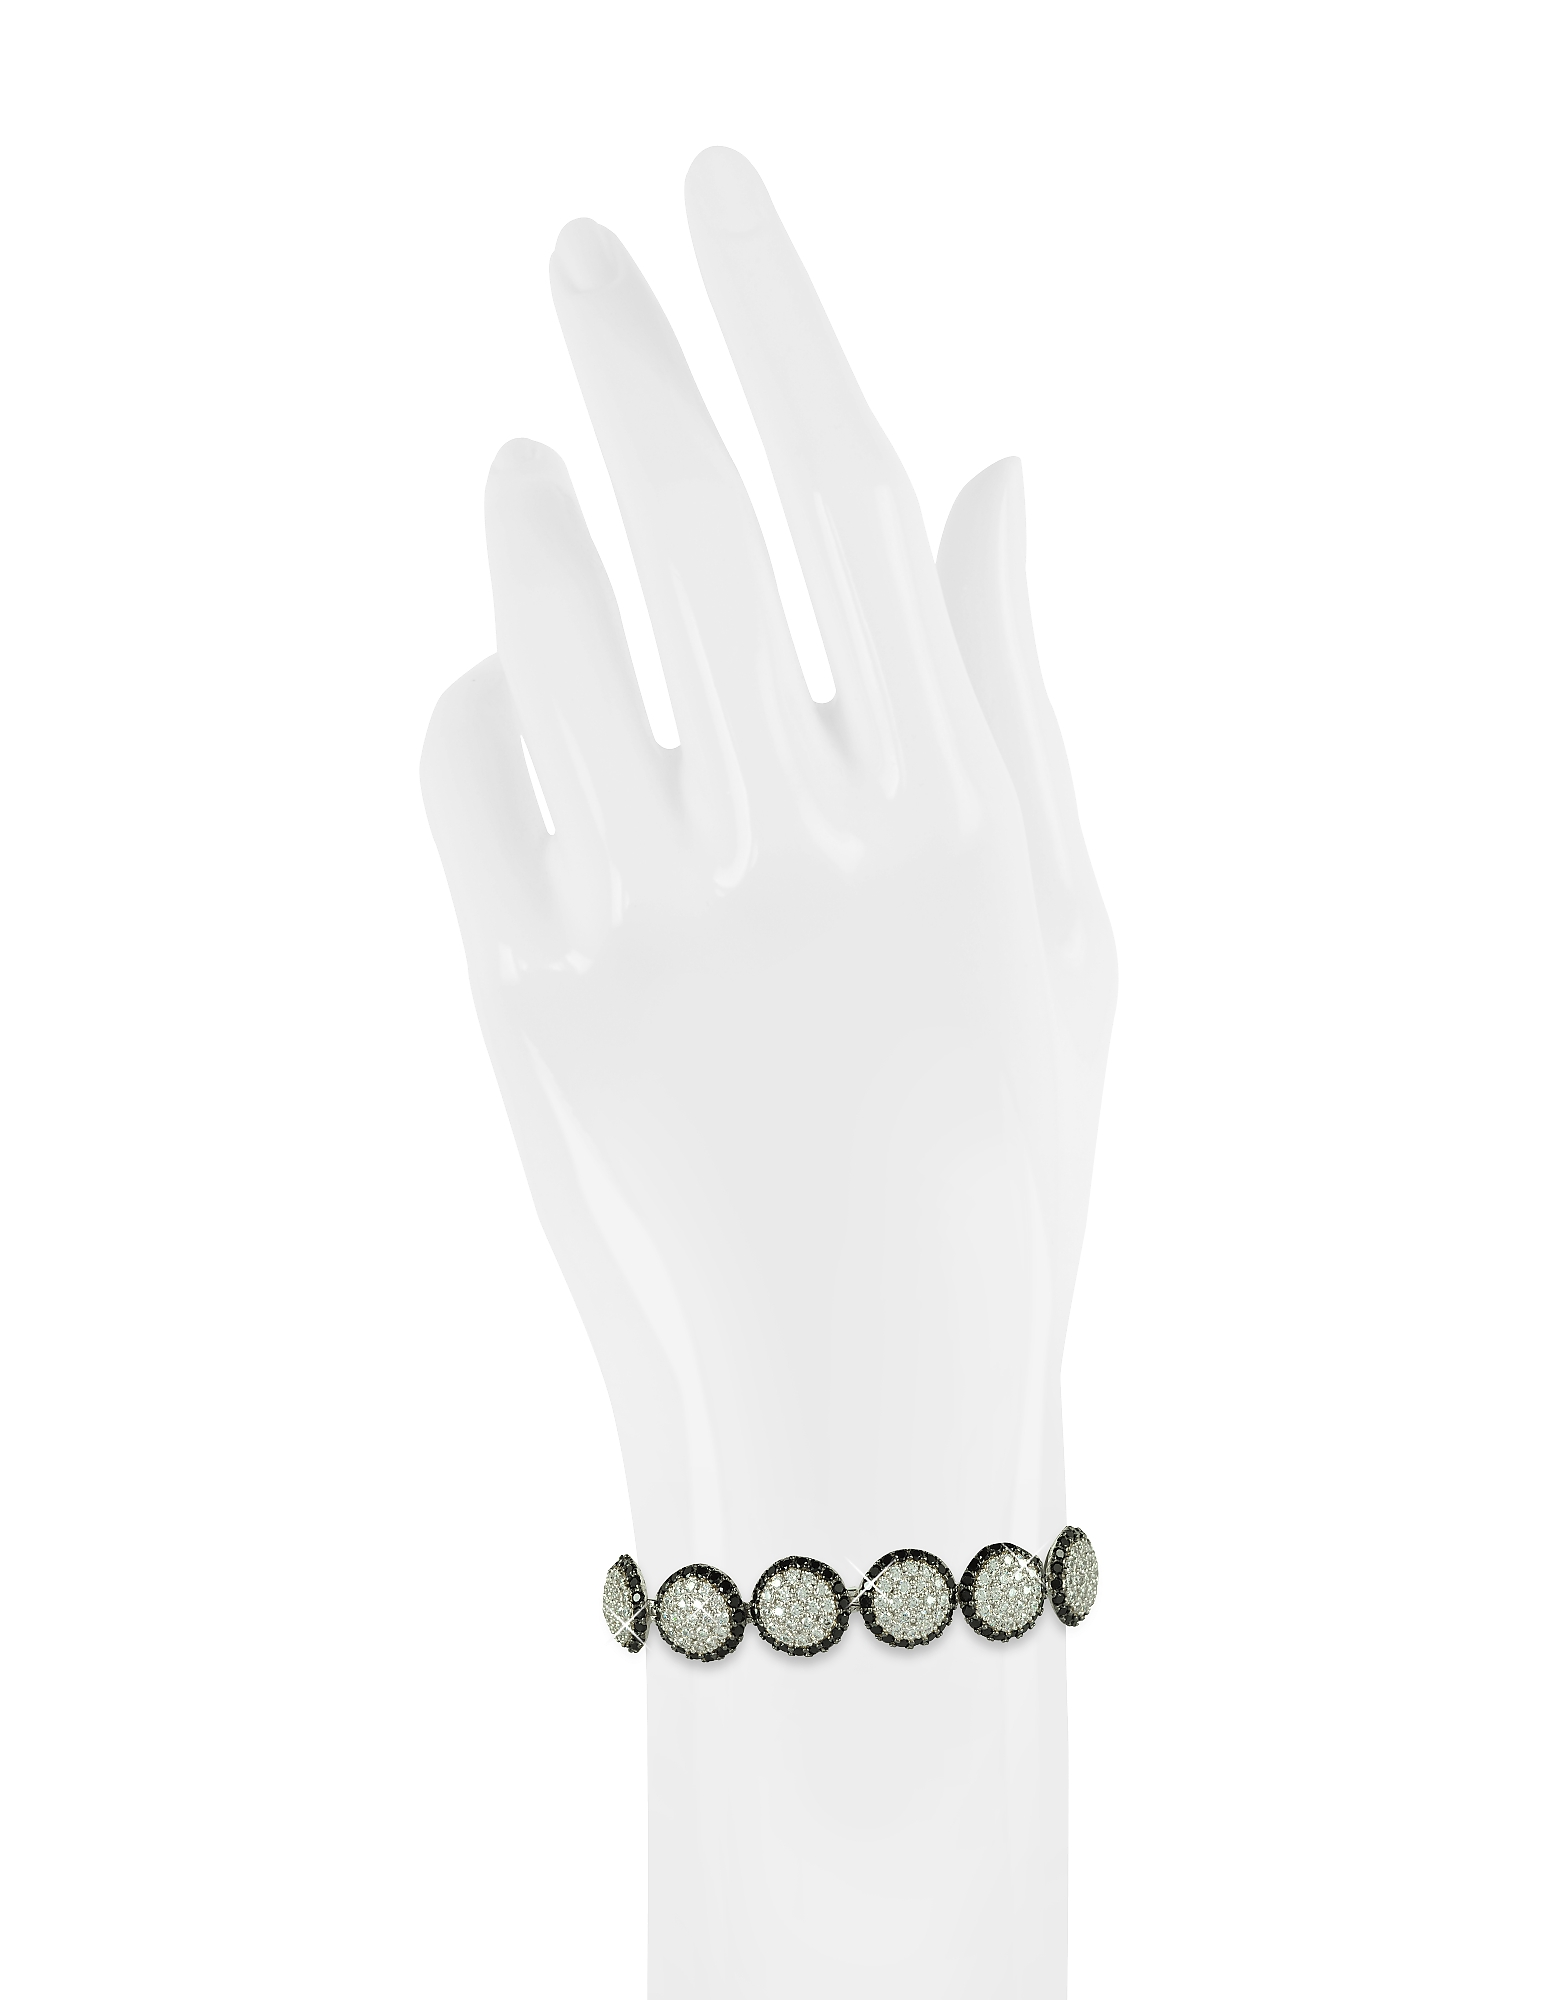 Two Tone Cubic Zirconia & Sterling Silver Bracelet от Forzieri.com INT